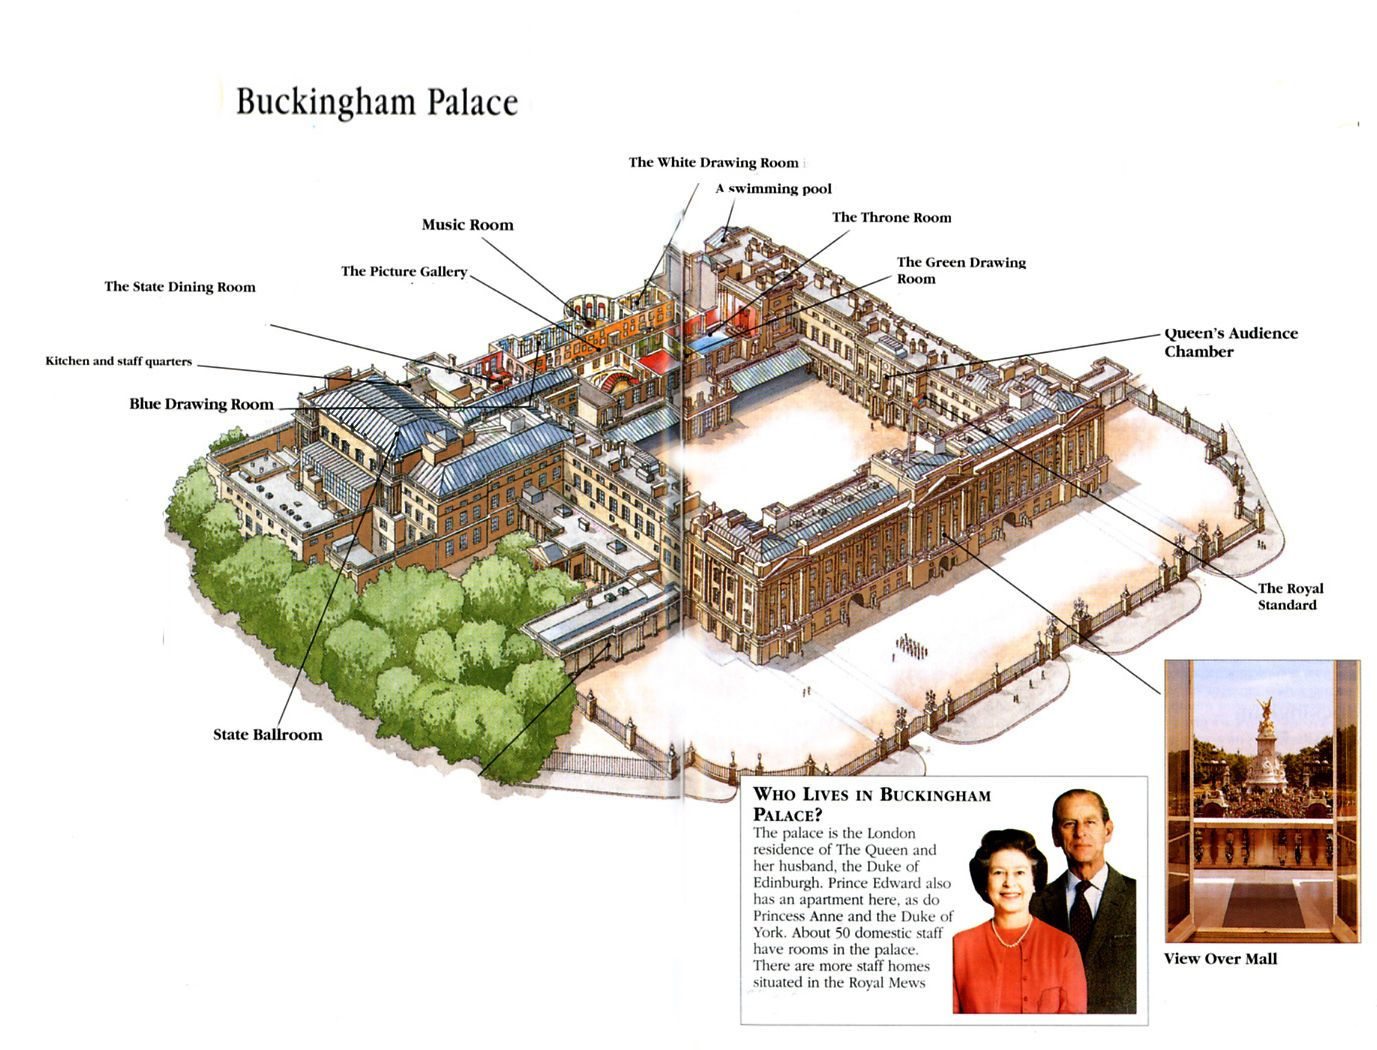 C E F D B Acbd D D Bee British Royals Queen Elizabeth further Df Aa F E Fa A F Ff moreover Darlington Hyde Park Triple Family Room additionally Kate Middleton furthermore Full Ce Dd Ba. on buckingham palace floor plan kitchen